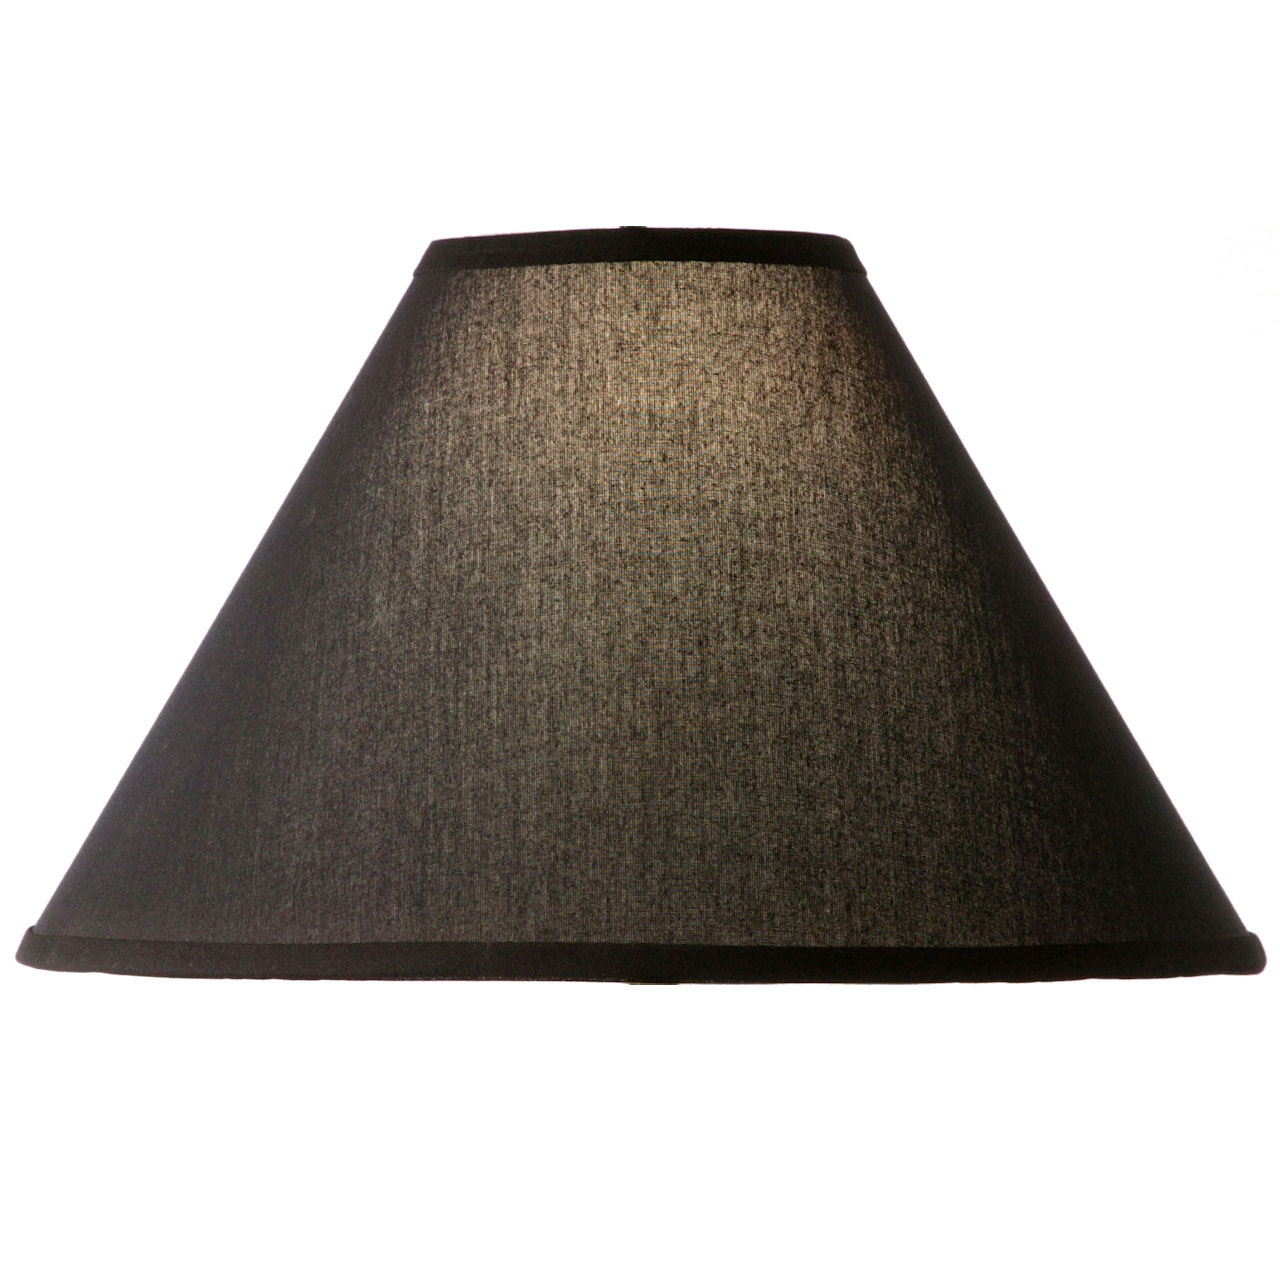 Natural black floor lamp shade 18 natural black linen floor lamp shade 18 aloadofball Gallery